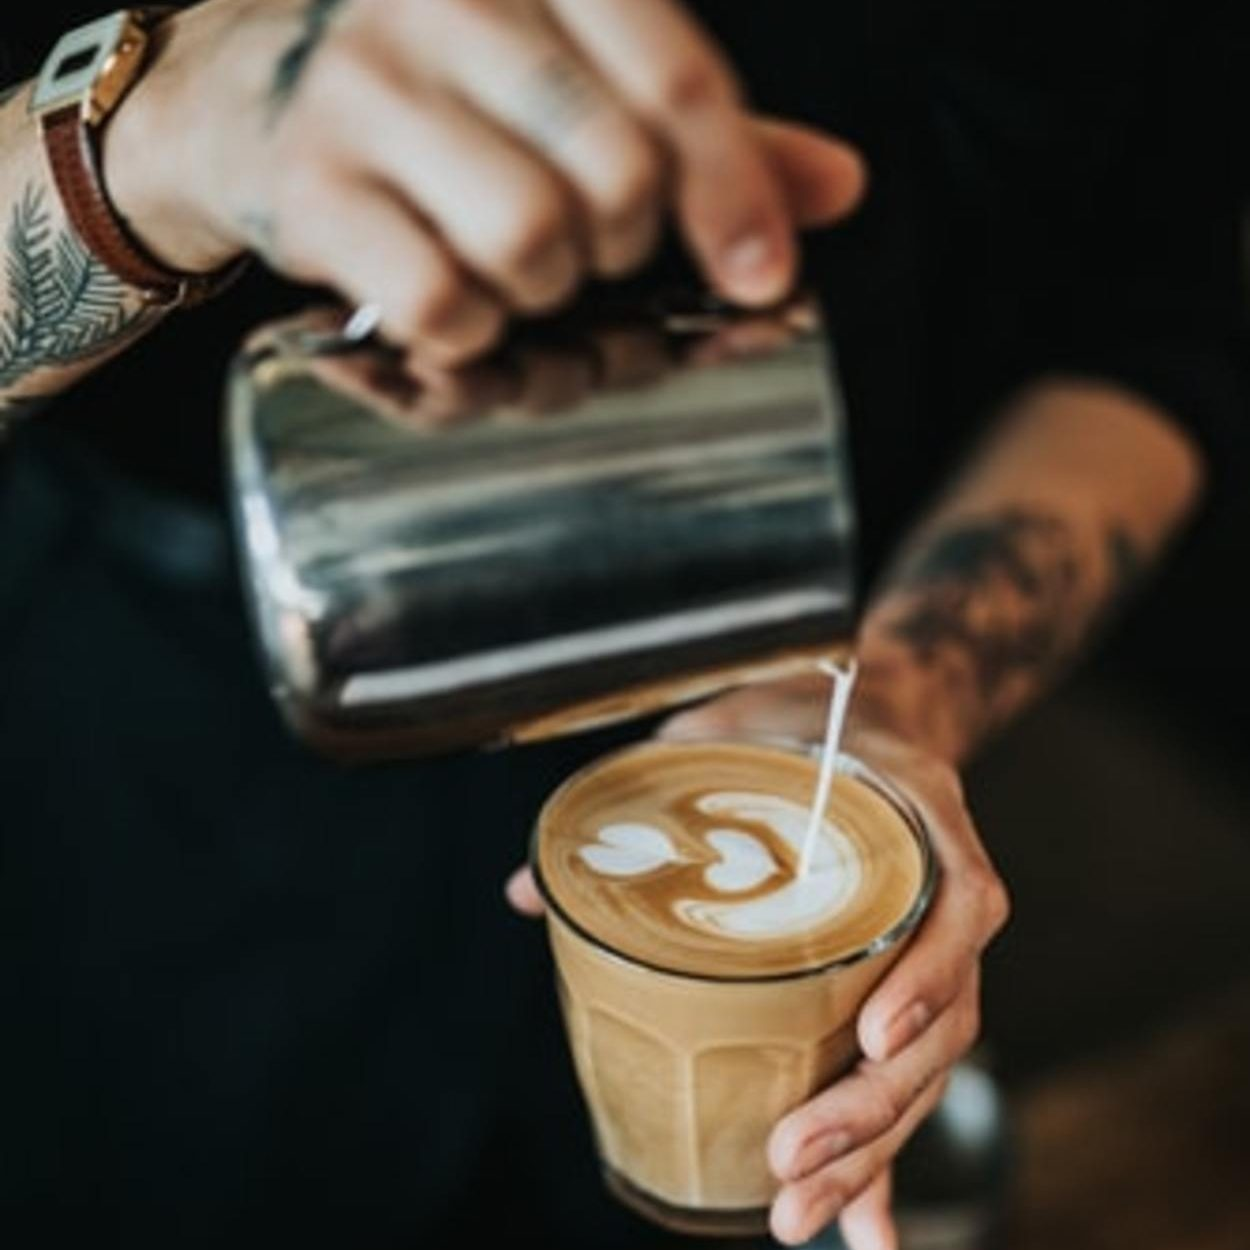 A barista pouring coffee in a cup.